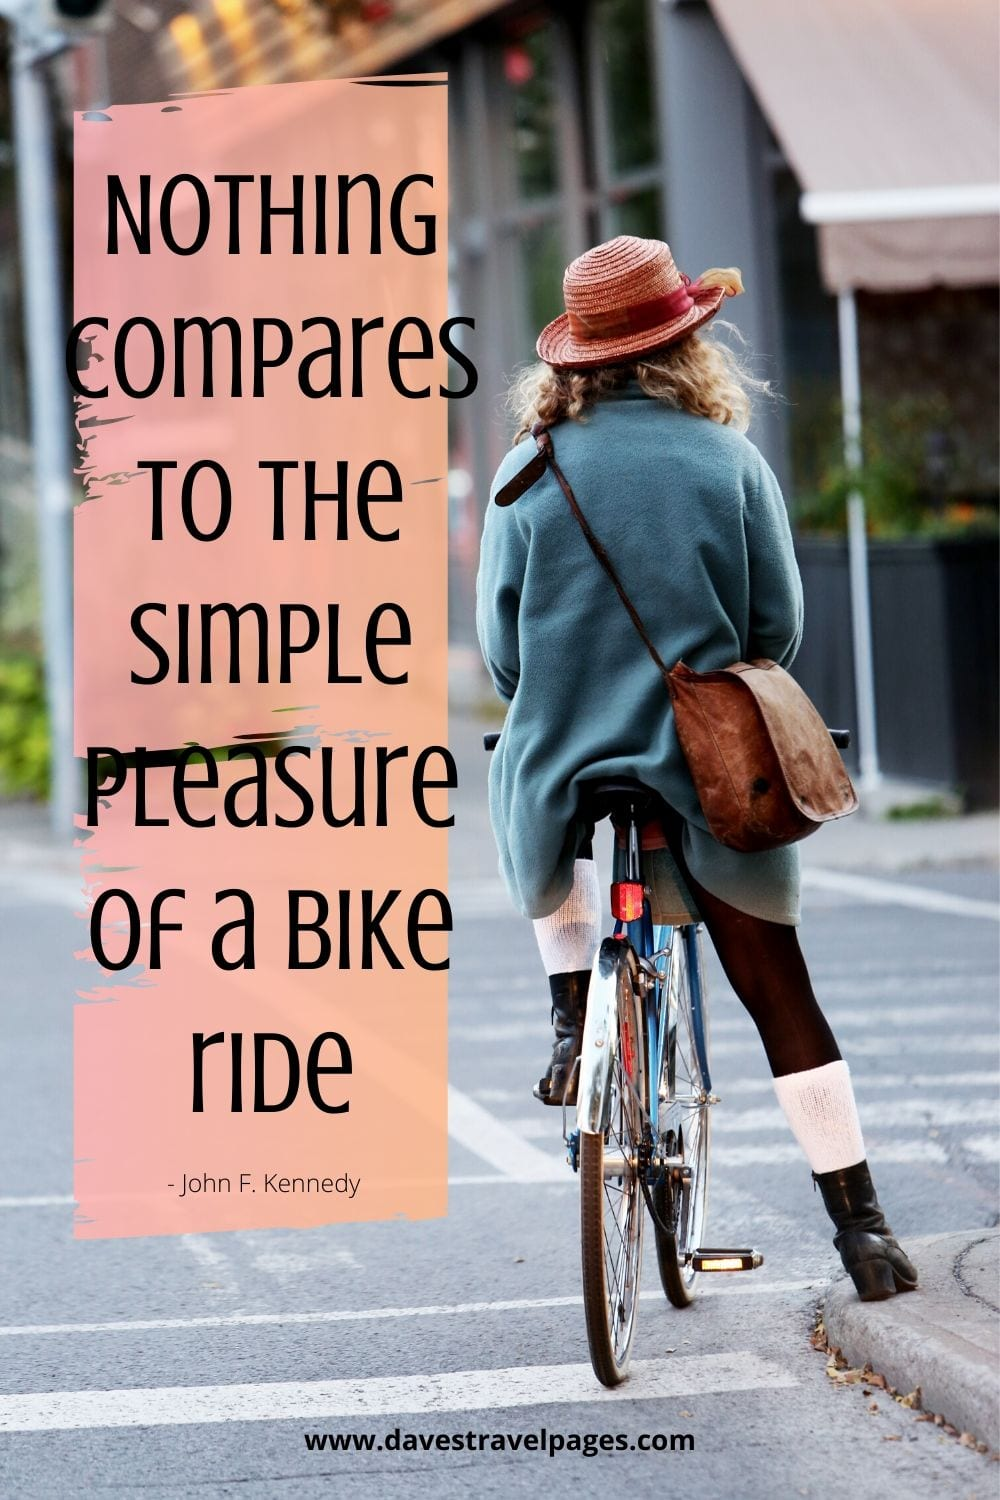 Nothing compares to the simple pleasure of a bike ride. ~John F. Kennedy